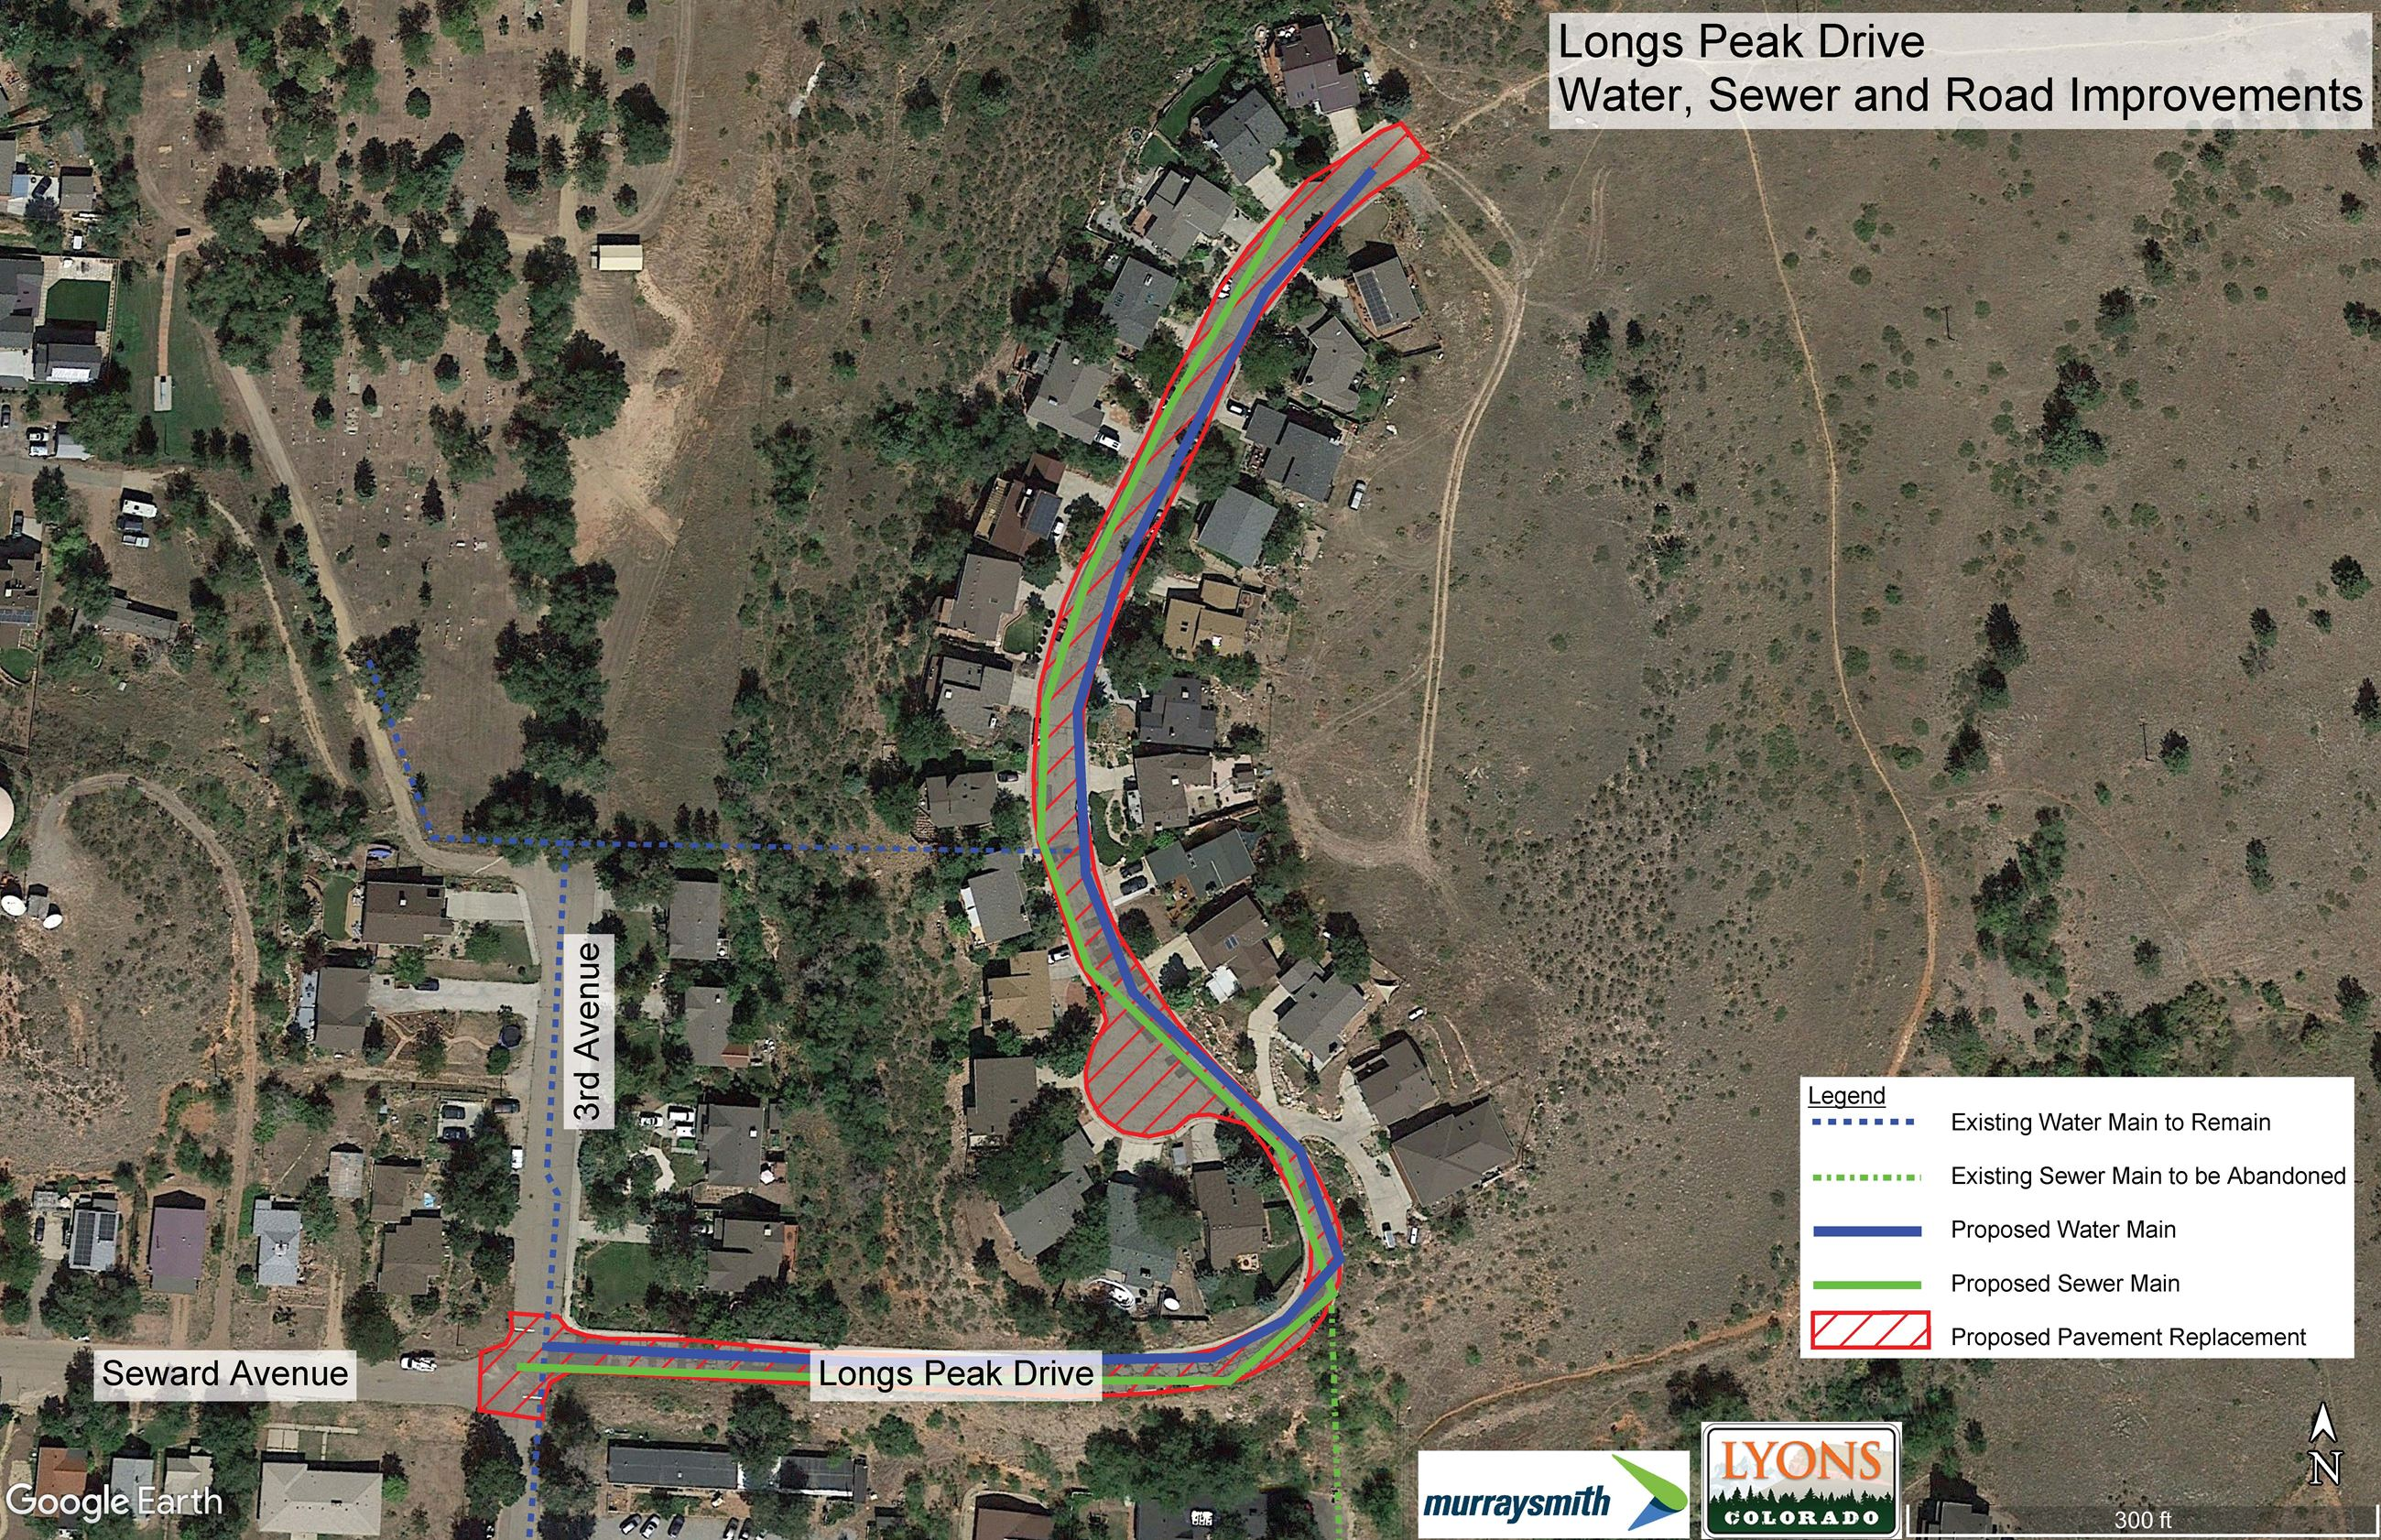 Longs Peak Drive Improvements Exhibit